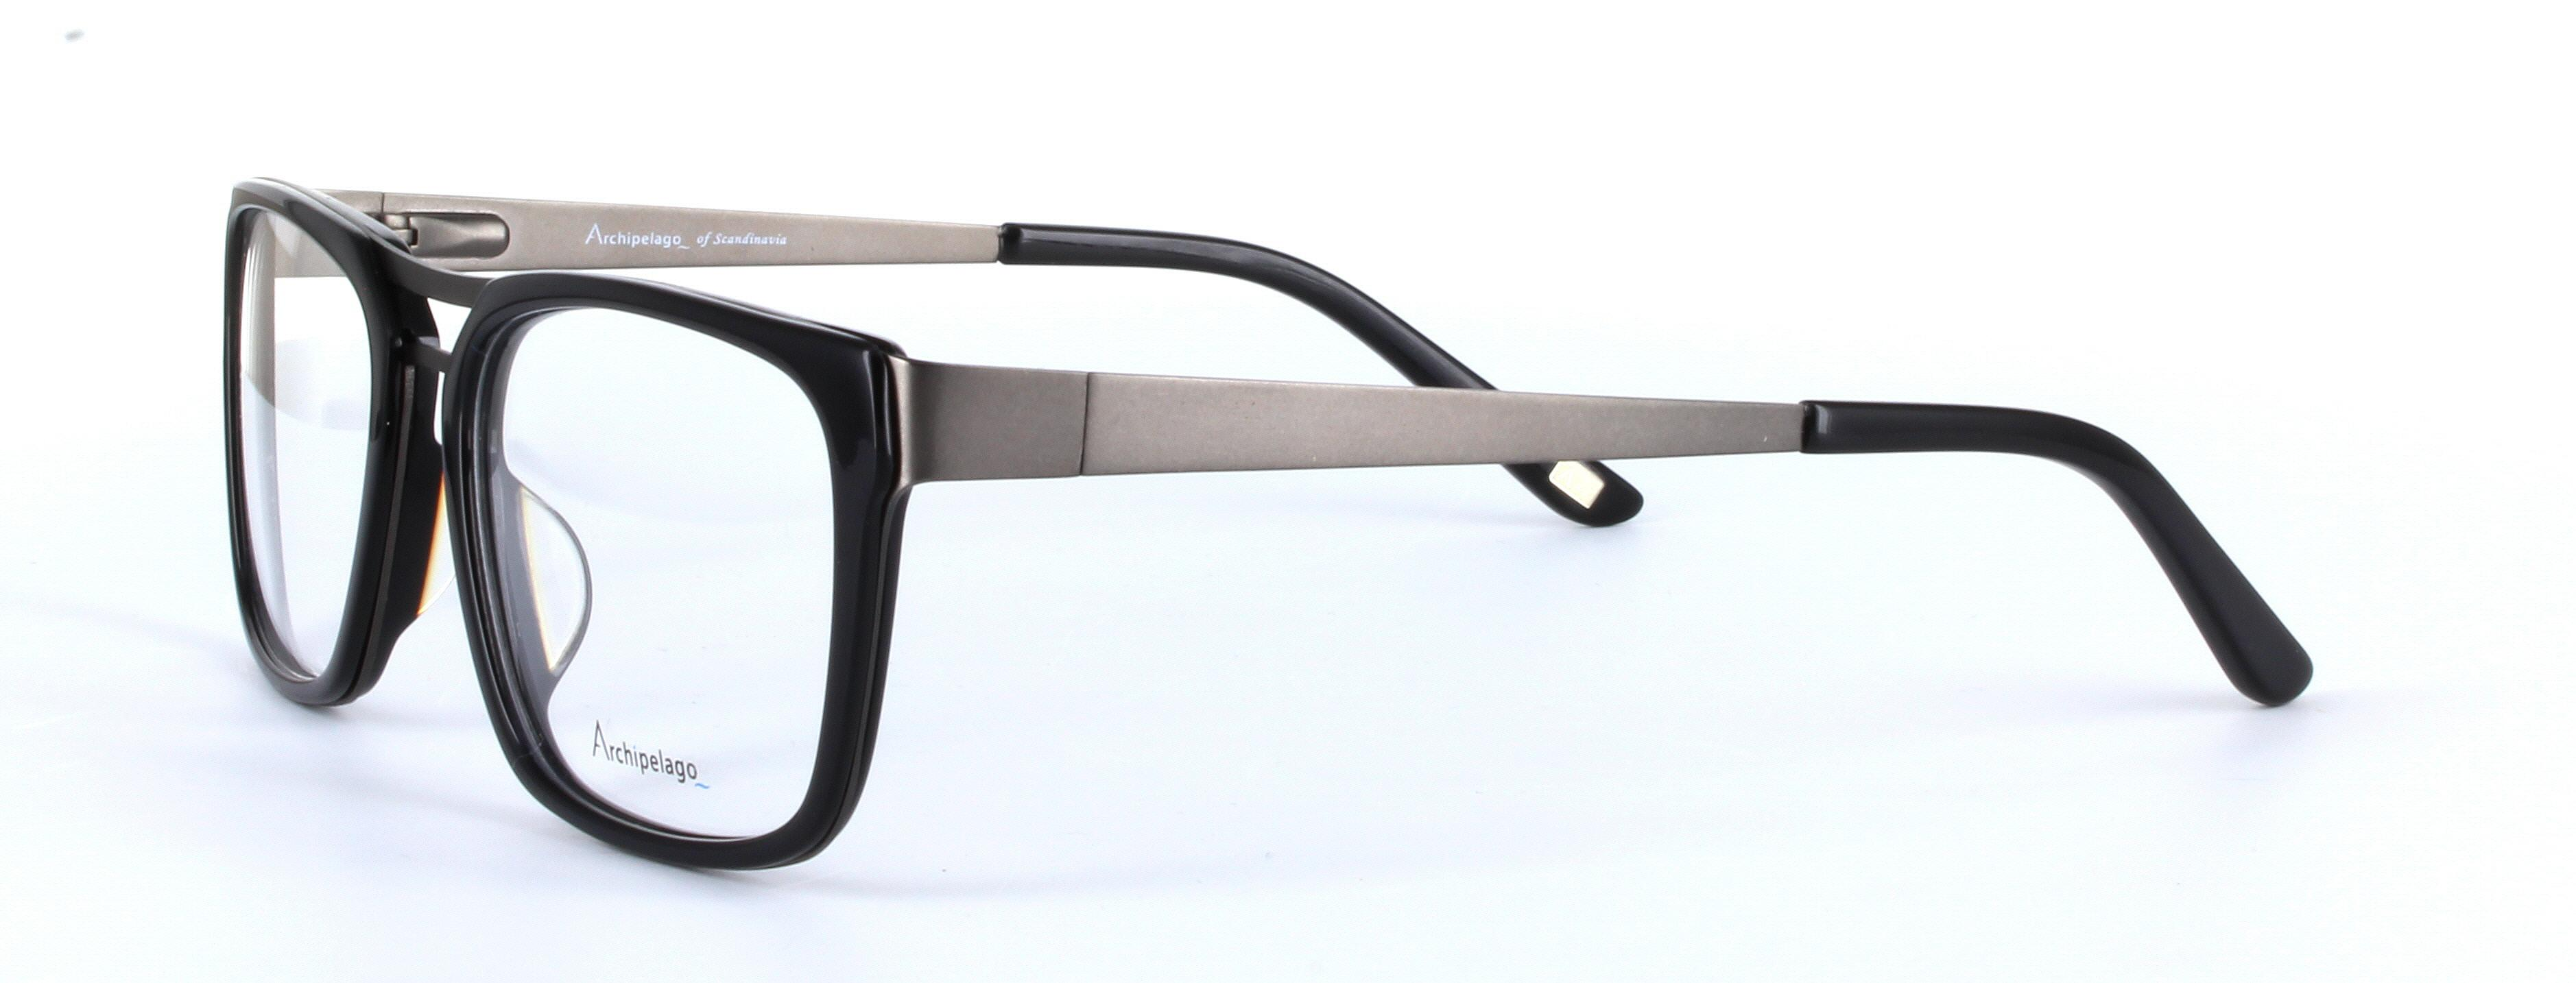 A5509 - Gents acetate with metal nosebridge image 2